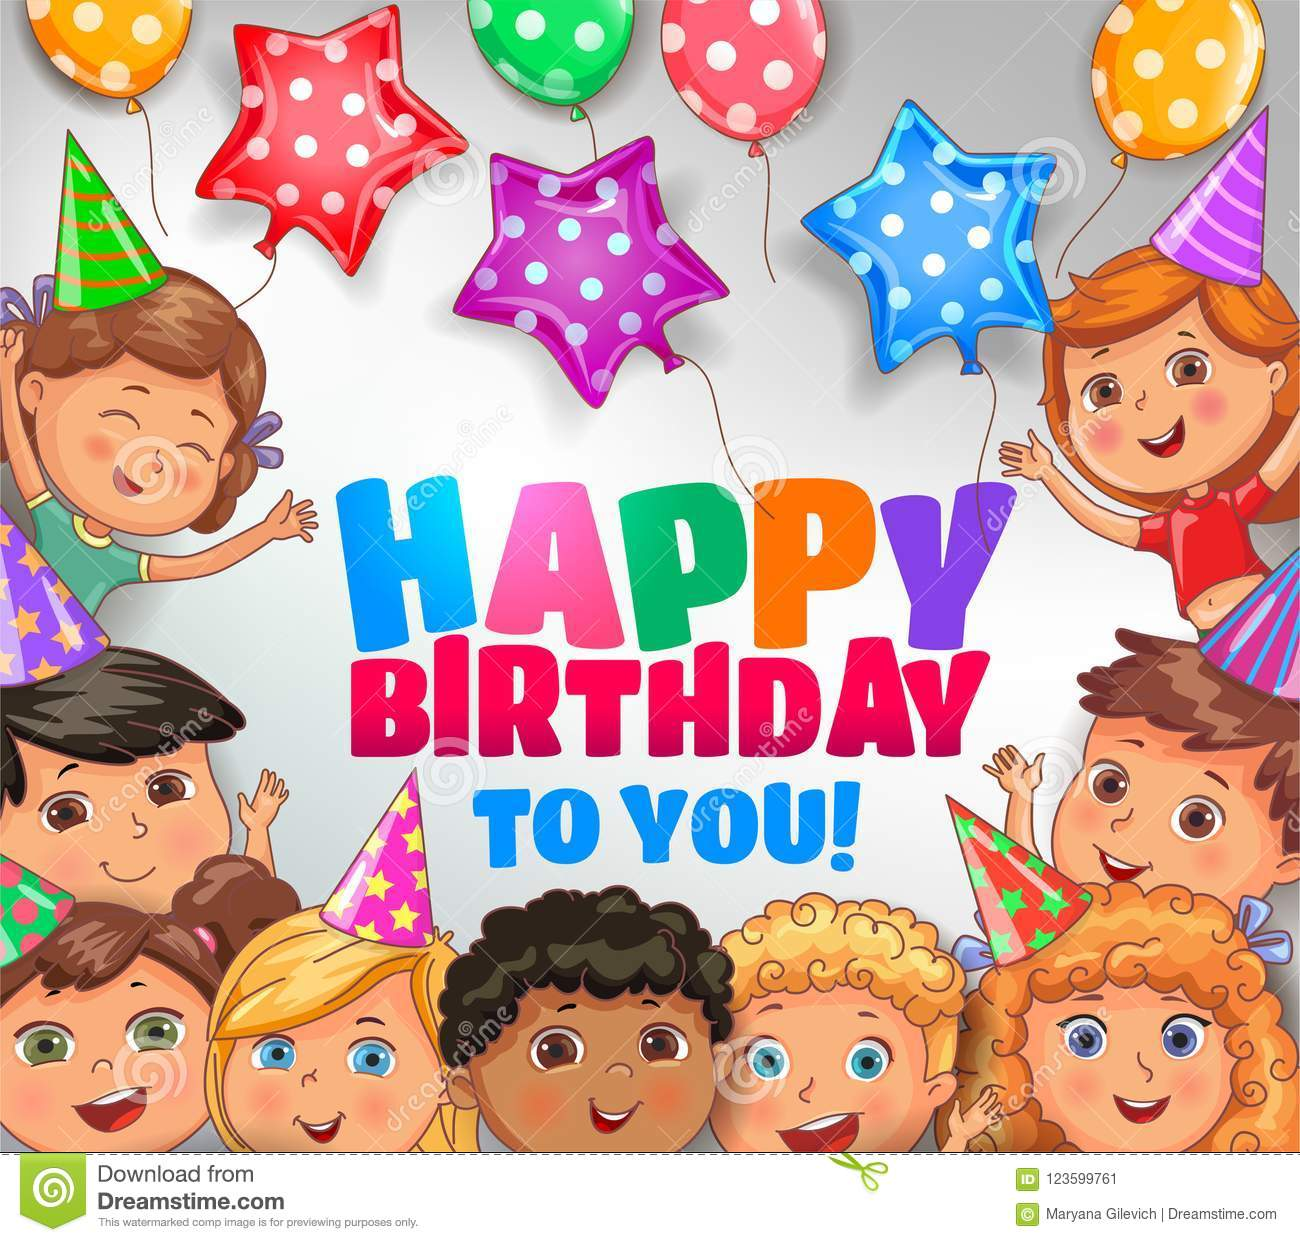 Happy Birthday To You Bright Design With Cute Children Stock Vector Illustration Of Celebration Holding 123599761